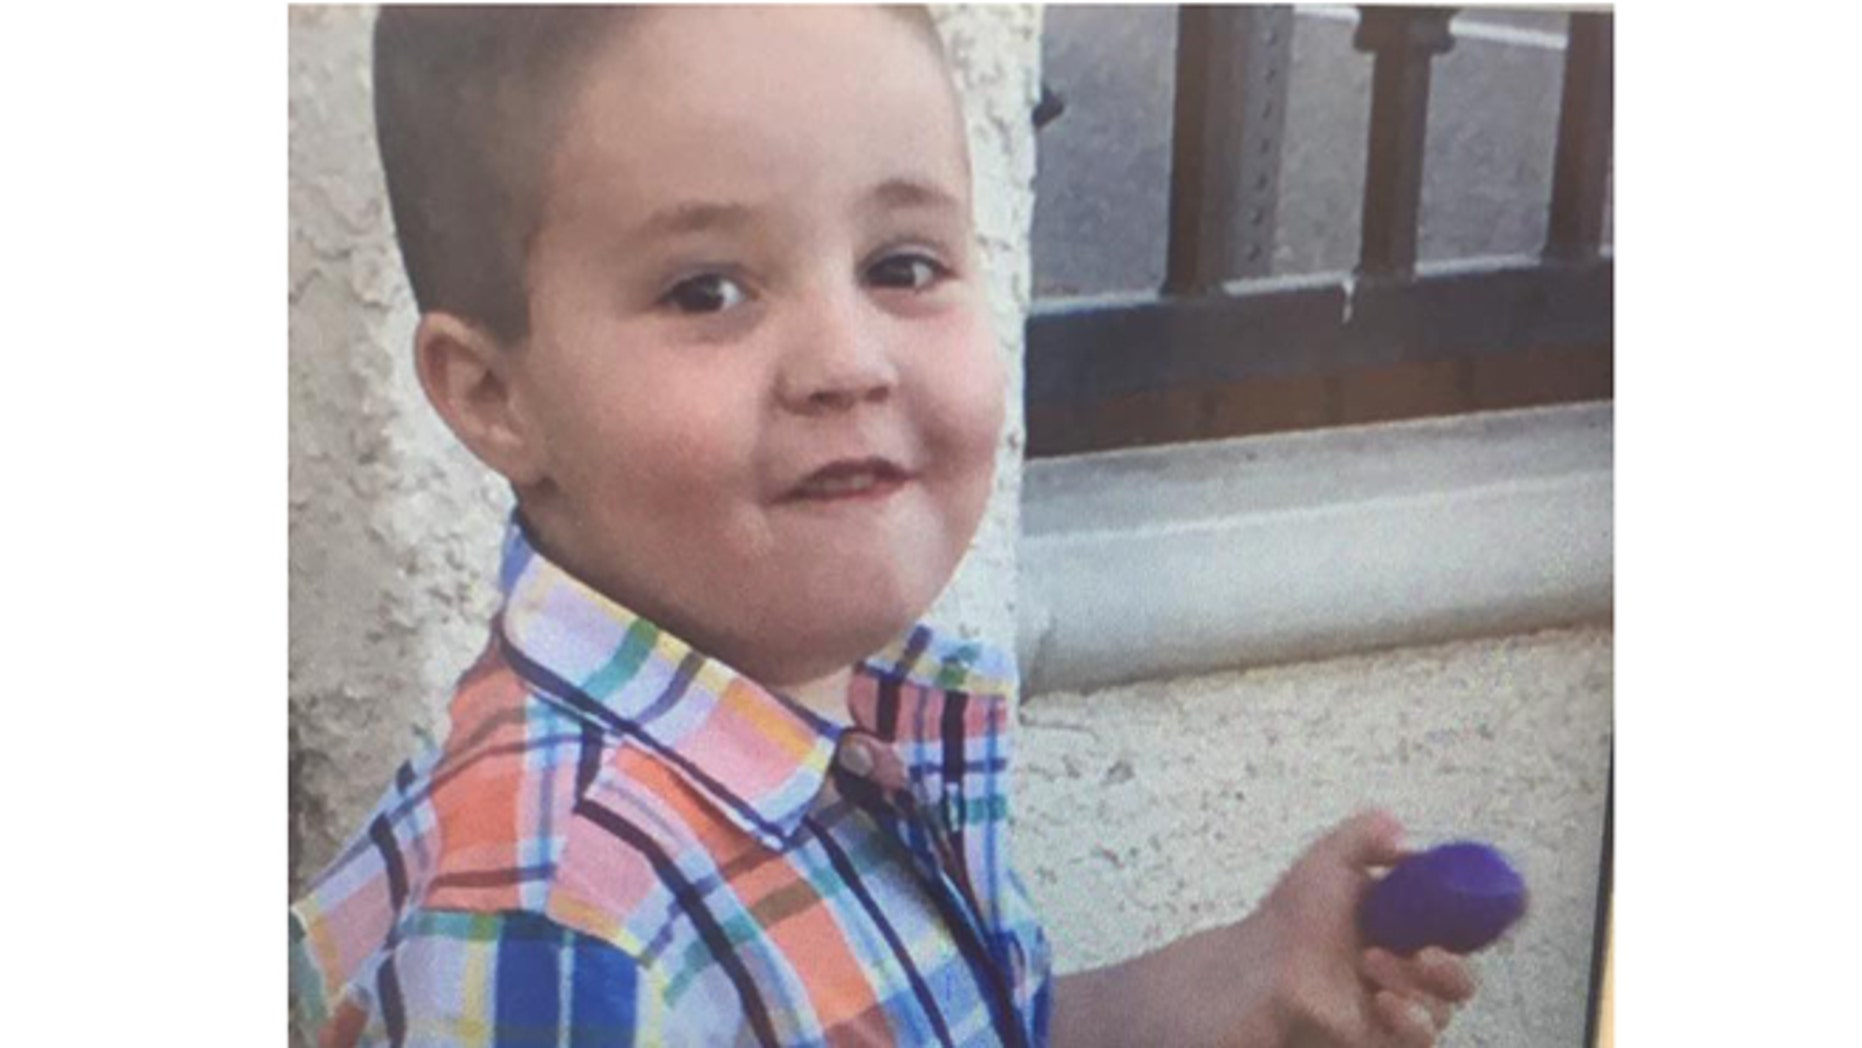 South Pasadena police in California say they are searching for this child, Aramazd Andressian, 5.